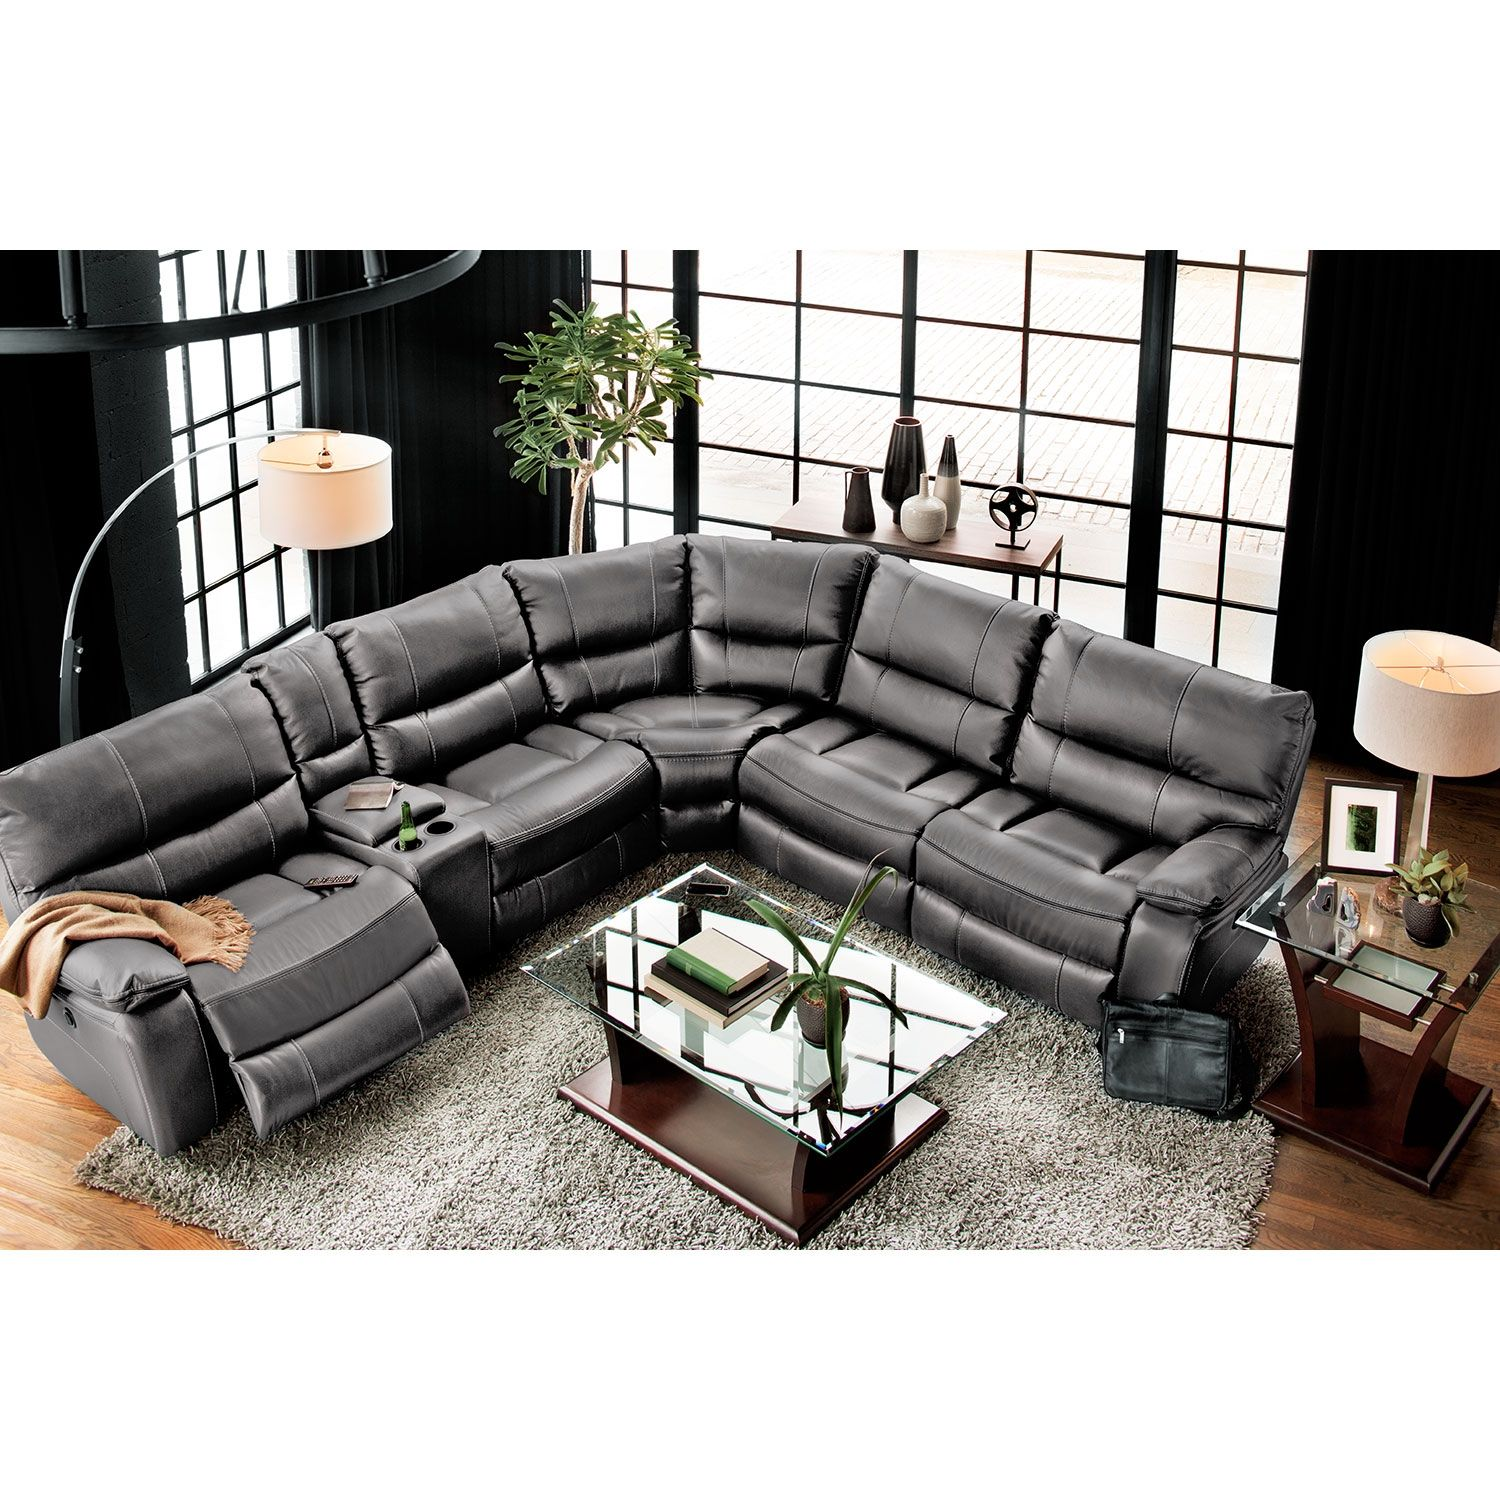 Best Orlando 6 Piece Power Reclining Sectional With 2 Reclining 400 x 300